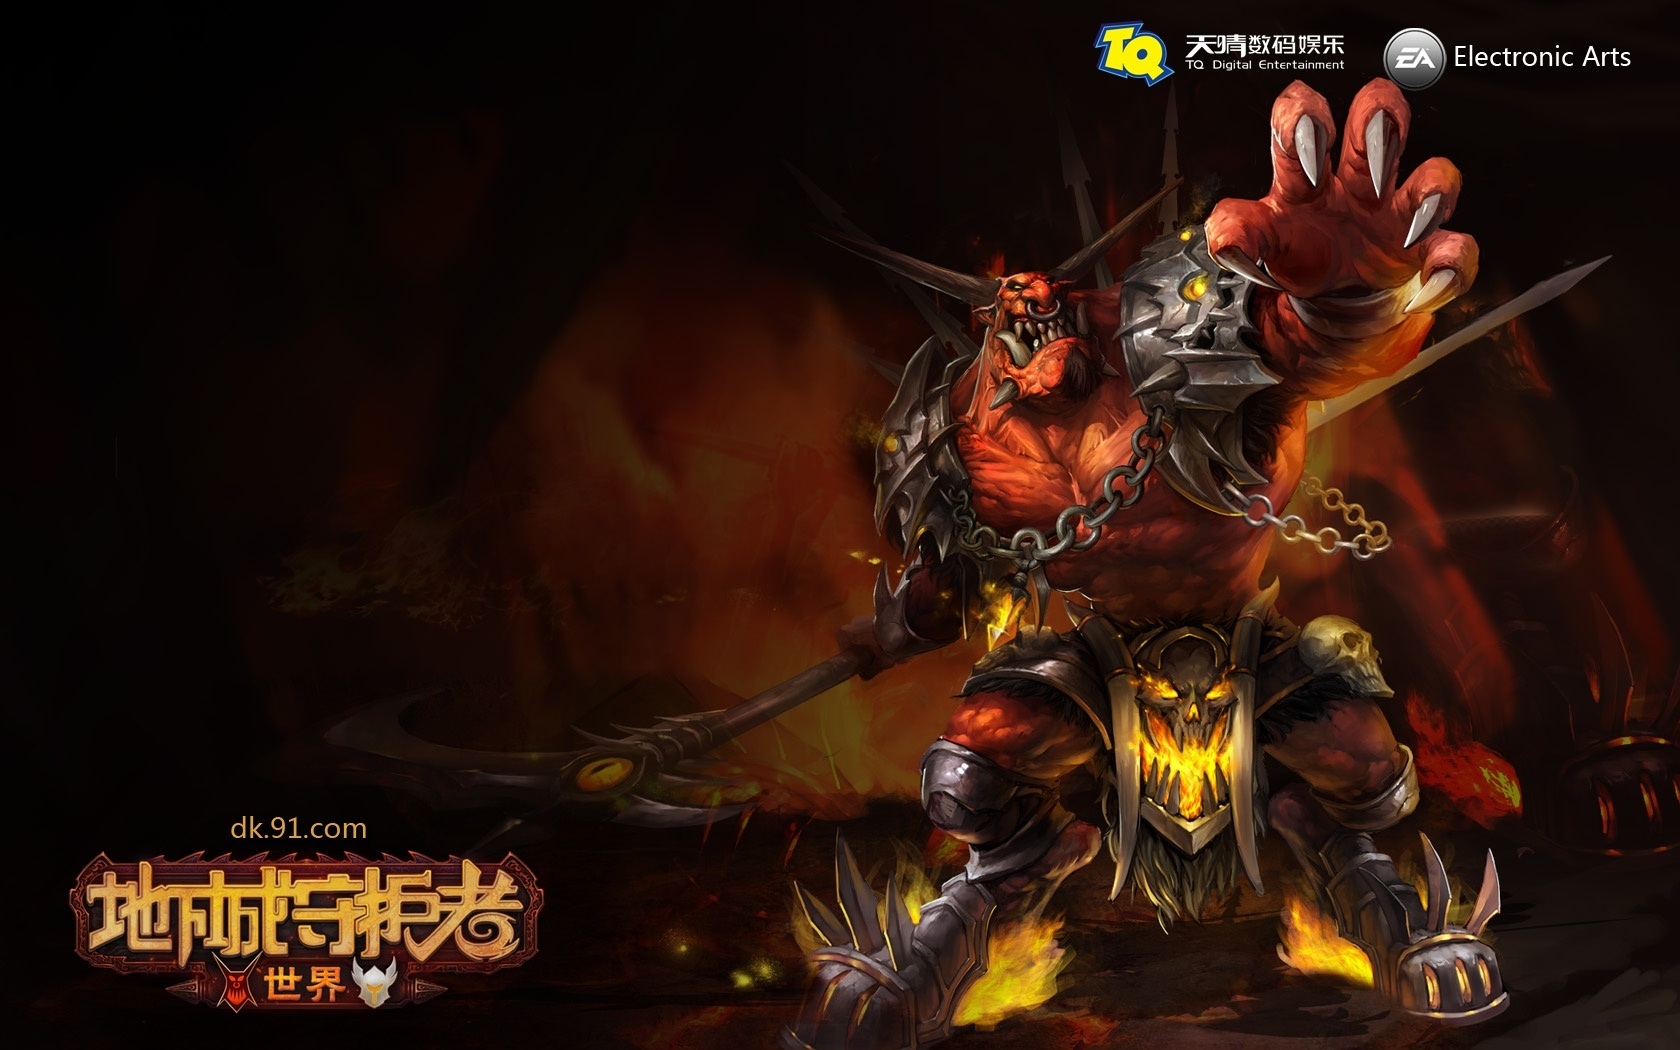 Dungeon Keeper Online